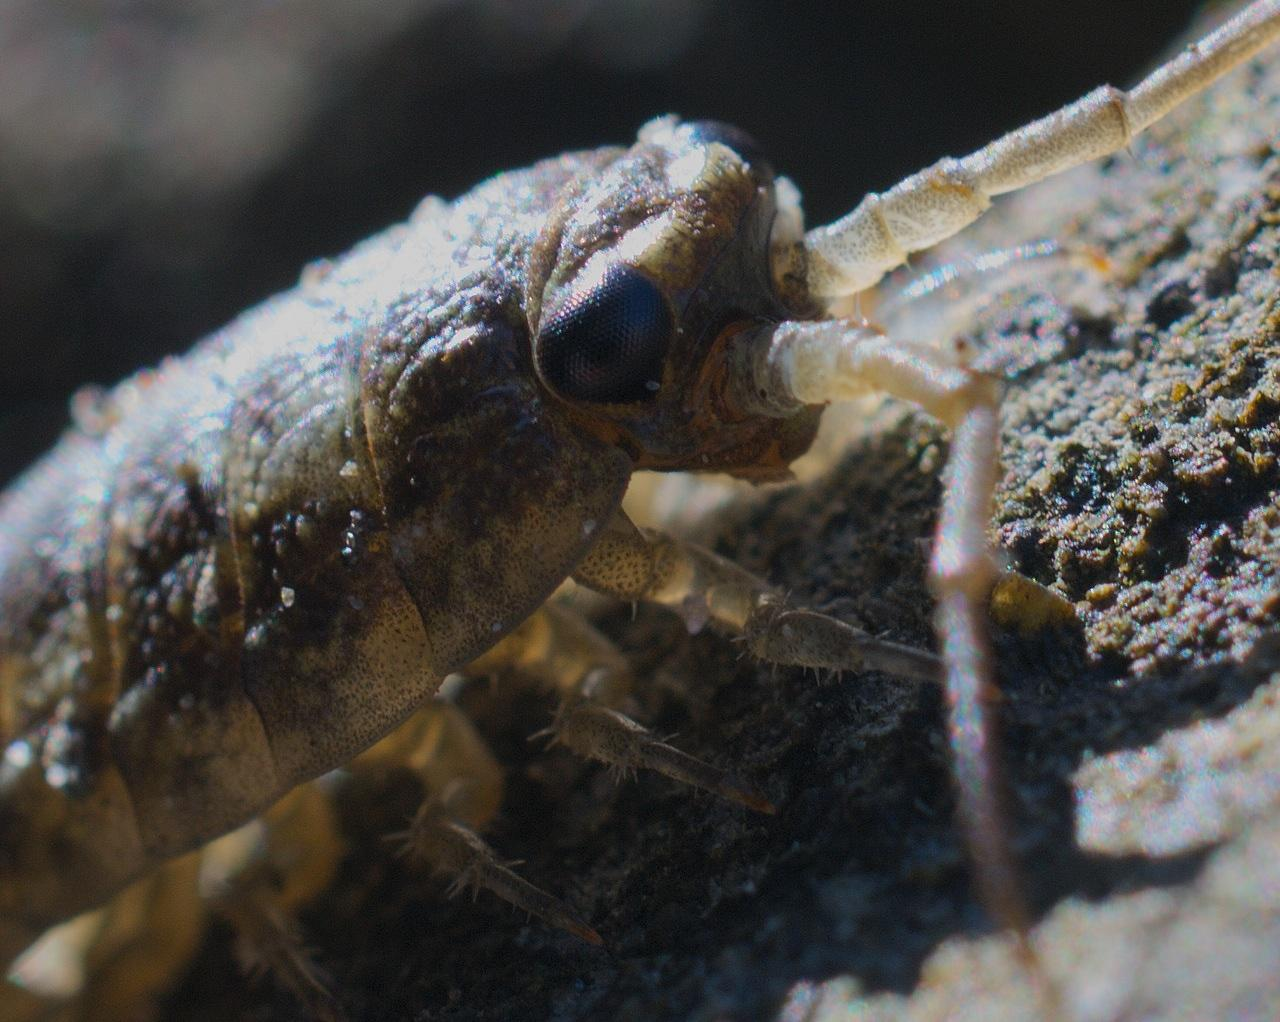 Some sort of Isopod (relative of terrestrial sow bugs), posing for a close-up while foraging in crevices at high intertidal. Actual length about an inch, not counting antennae.